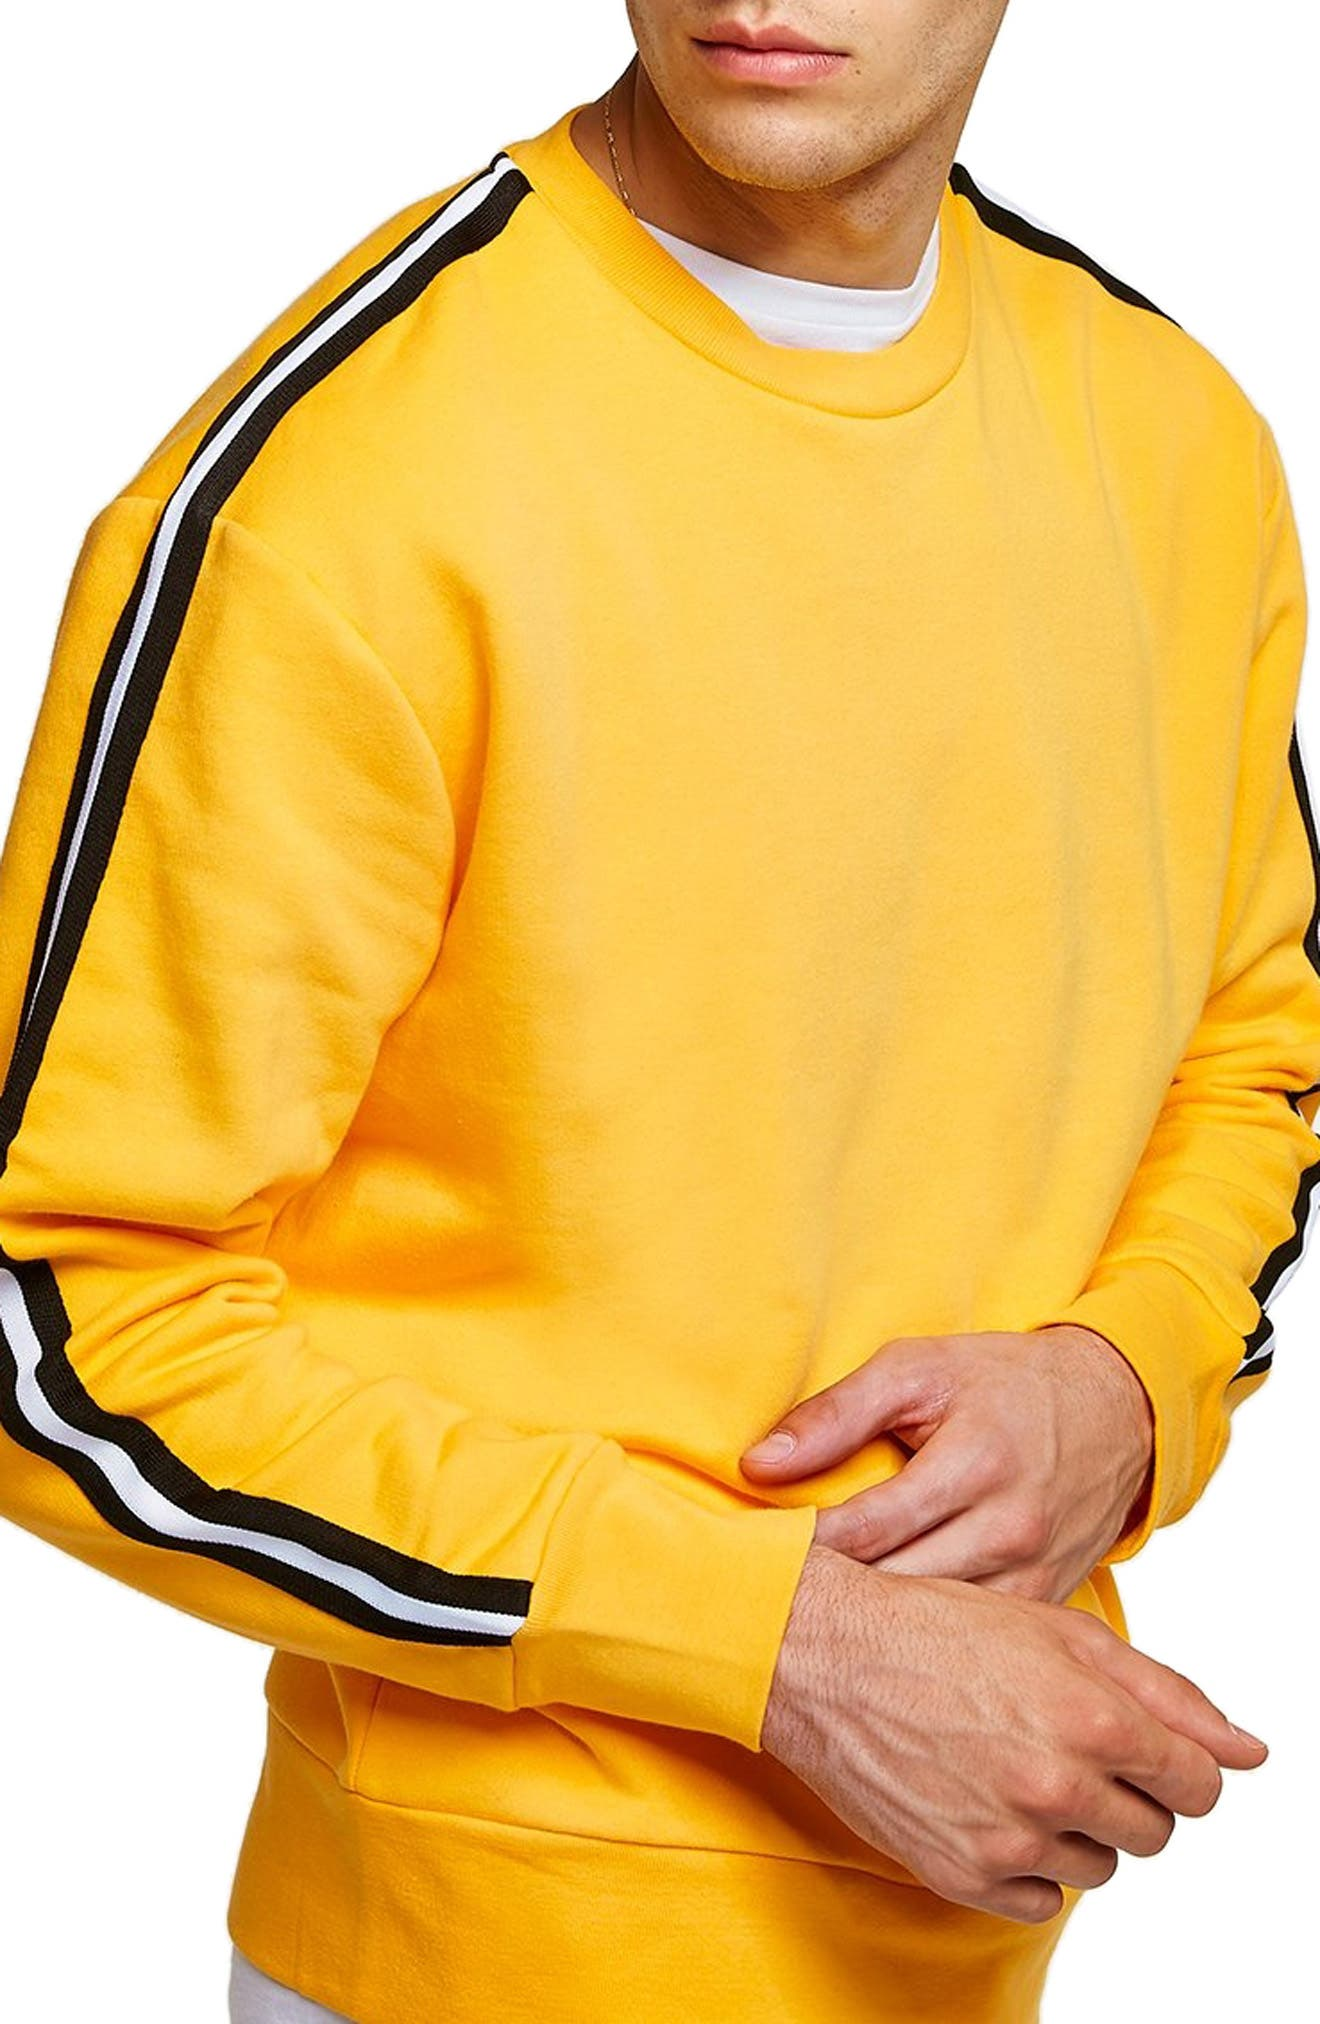 Taped Classic Fit Sweatshirt,                             Alternate thumbnail 3, color,                             700